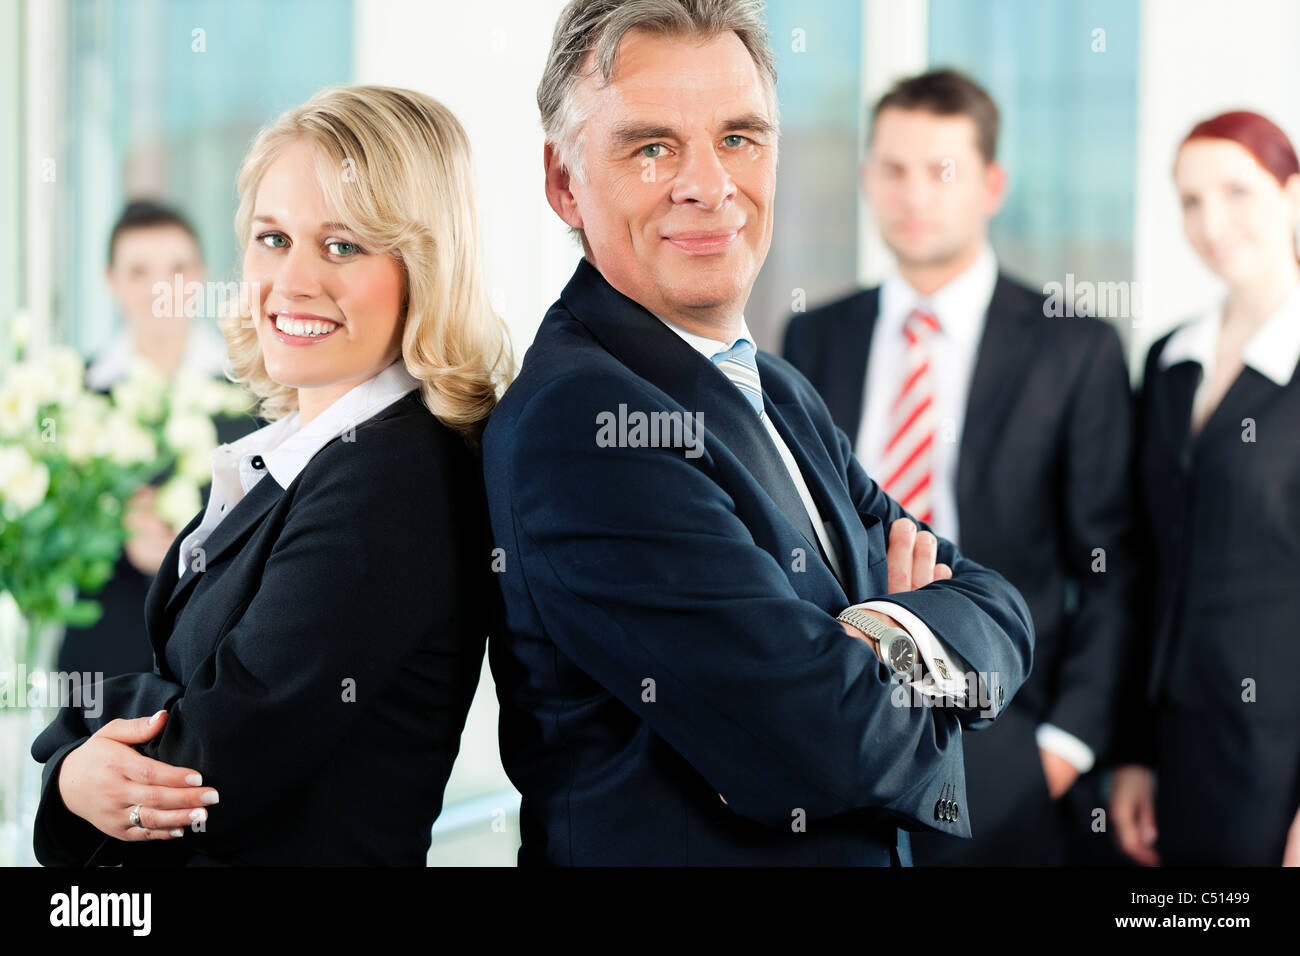 Business - team in an office; the senior executive is standing in front with his secretary - Stock Image